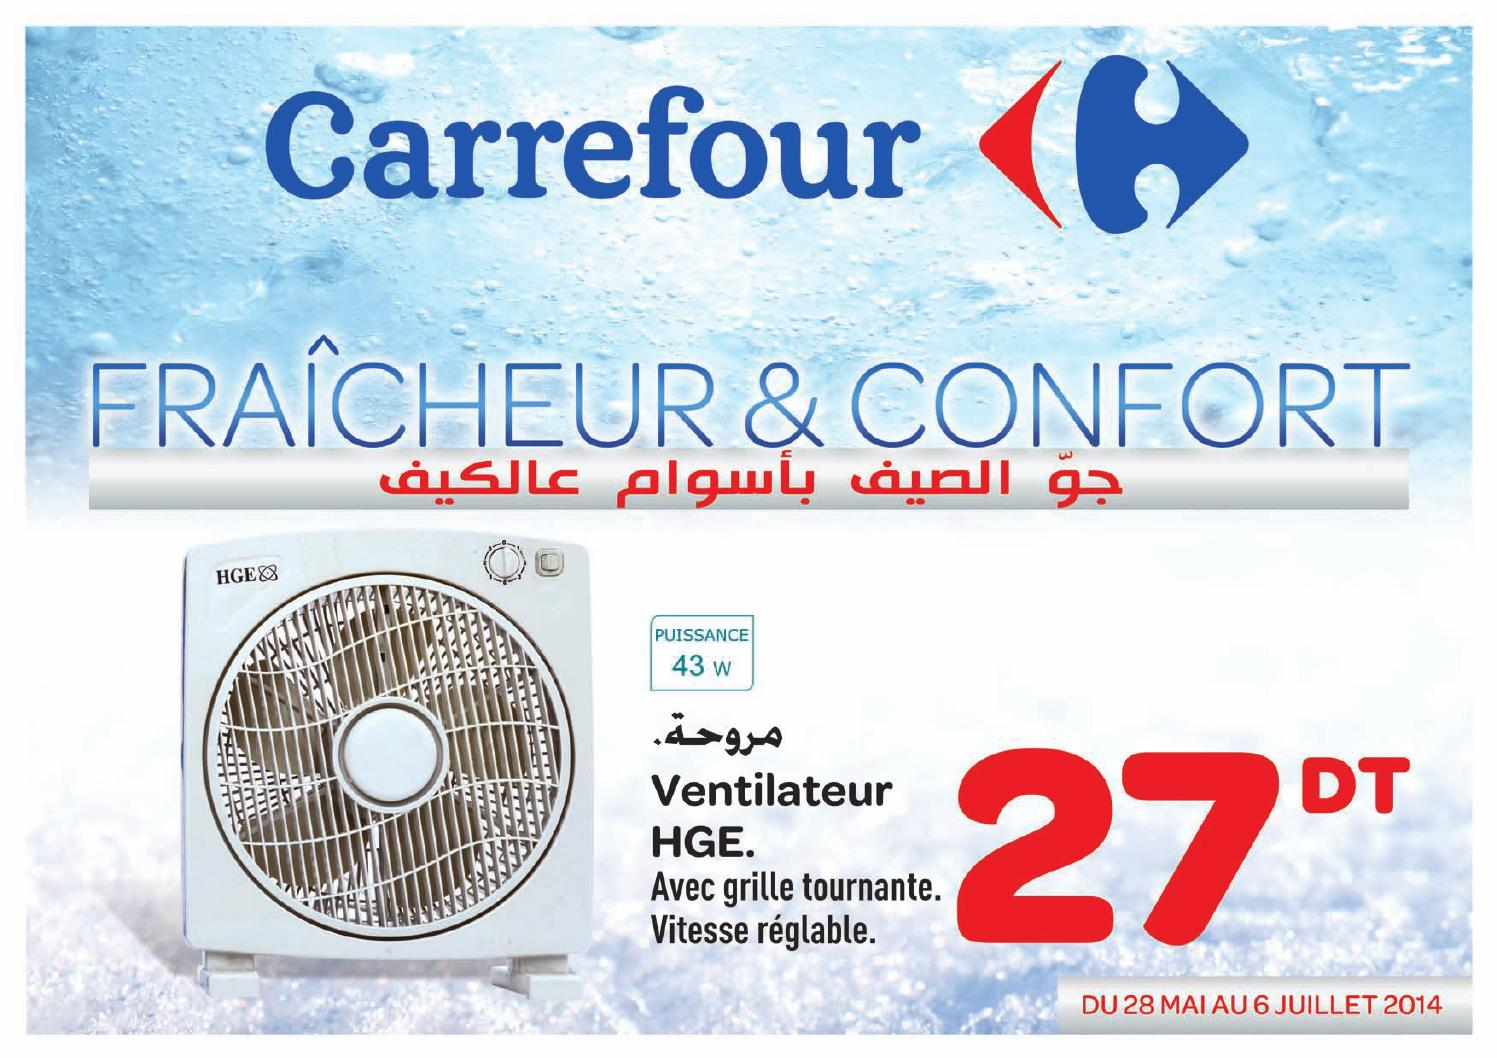 catalogue carrefour 100 froid by carrefour tunisie issuu. Black Bedroom Furniture Sets. Home Design Ideas